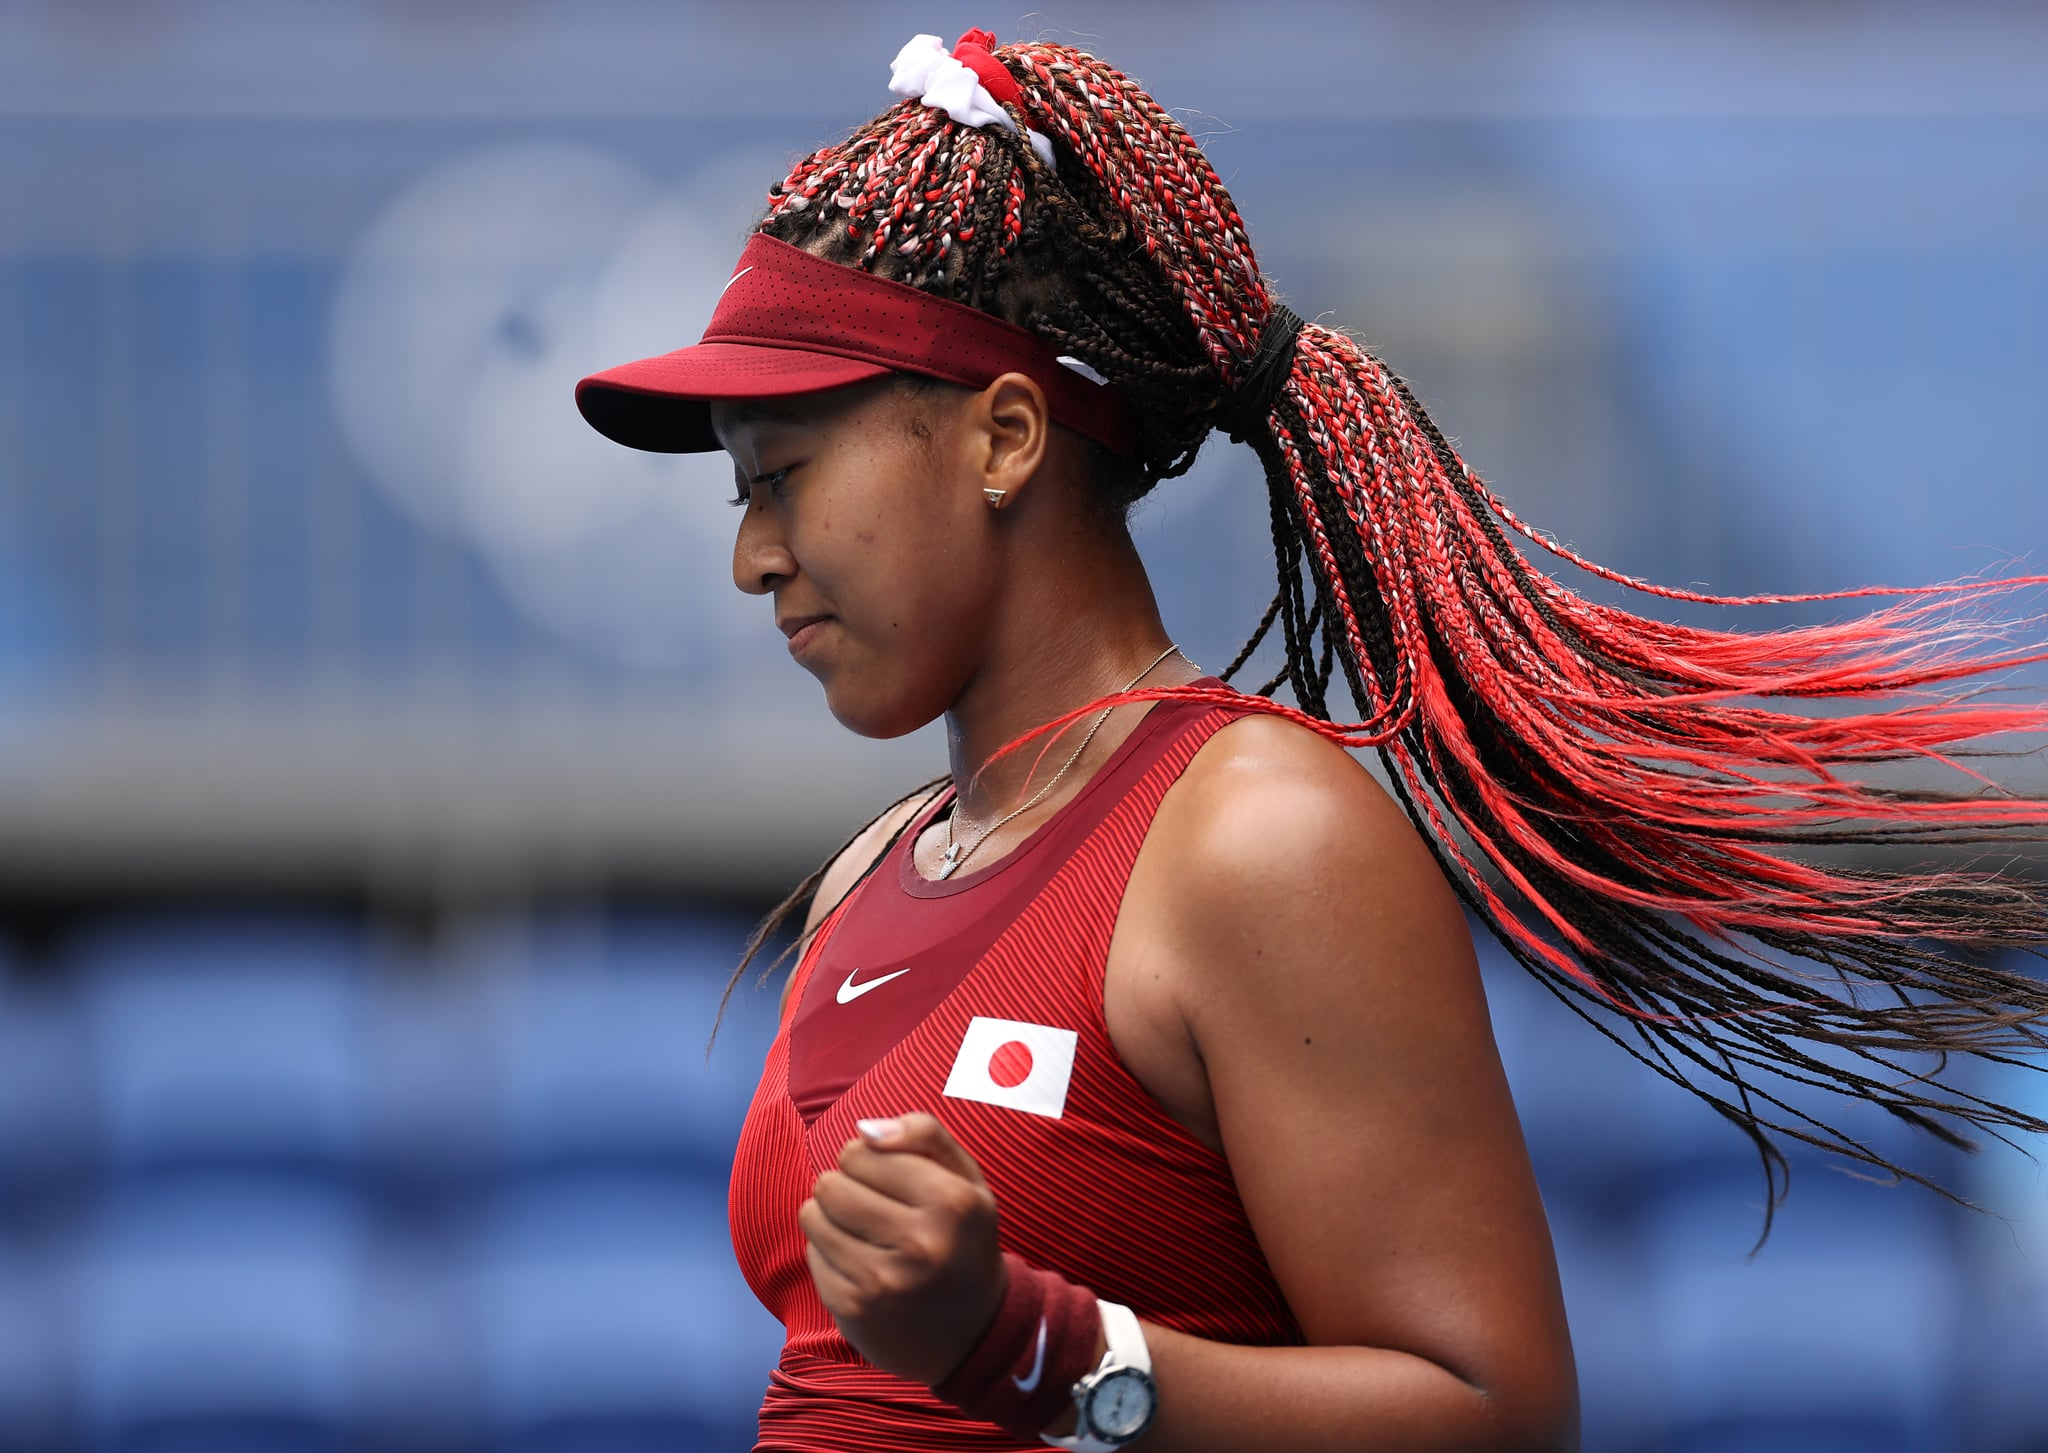 TOKYO, JAPAN - JULY 26: Naomi Osaka of Team Japan celebrates after match point in her Women's Singles Second Round match against Viktorija Golubic of Team Switzerland on day three of the Tokyo 2020 Olympic Games at Ariake Tennis Park on July 26, 2021 in Tokyo, Japan. (Photo by Clive Brunskill/Getty Images)